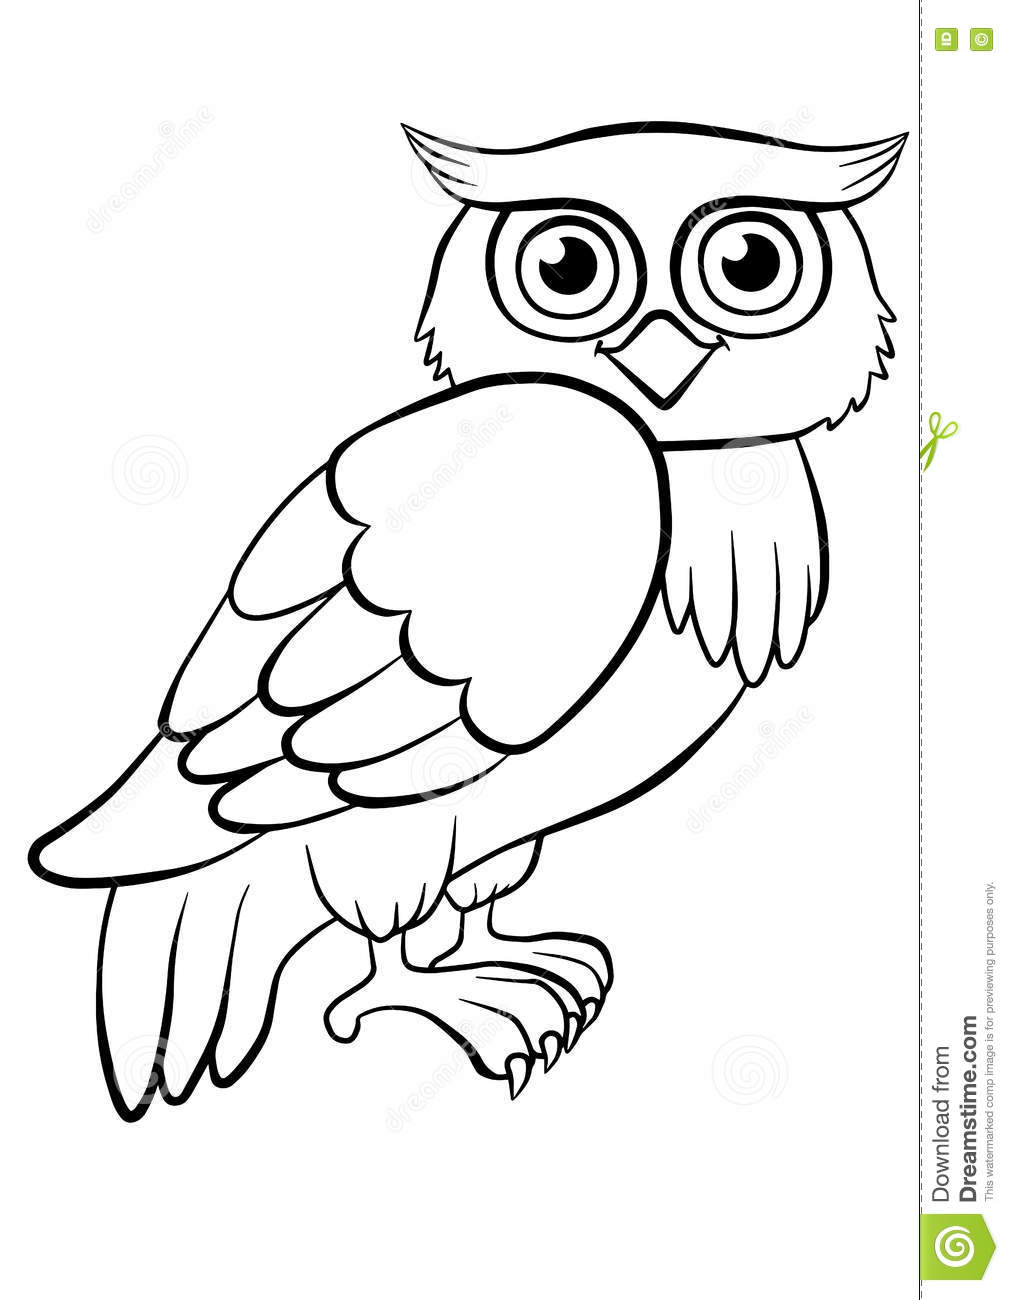 Coloring Pages. Birds. Cute Owl. Stock Vector - Illustration of baby ...